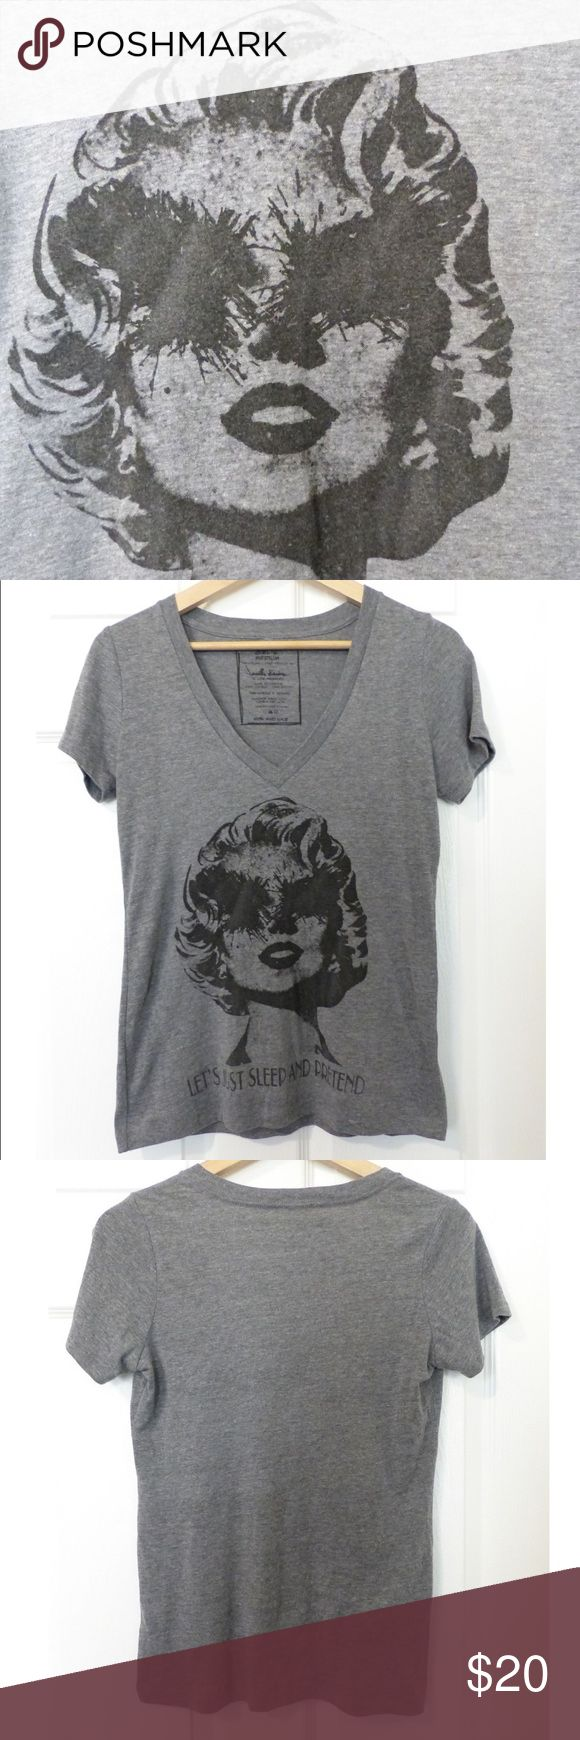 "HIPS & HAIR Marilyn Monroe Eyeless Graphic Tee M Worn once. Unique women's graphic V-neck t-shirt with a morbid twist to the Iconic Marilyn Monroe face with scratched or removed eyes graphic printed with ""Let's Just Sleep and Pretend"" to your wardrobe. Marilyn Monroe fans, this one's for you.  Size: Medium -   Measurements:  Shoulder-to-shoulder: 15 Armpit-to-Armpit: 17 1/2 Full Bust: 35 Top to bottom: 25 1/2 Side Seams: 18 1/2 Sleeve Length: 7 Sleeve Full Opening: 12 1/2 Hem Full Opening…"